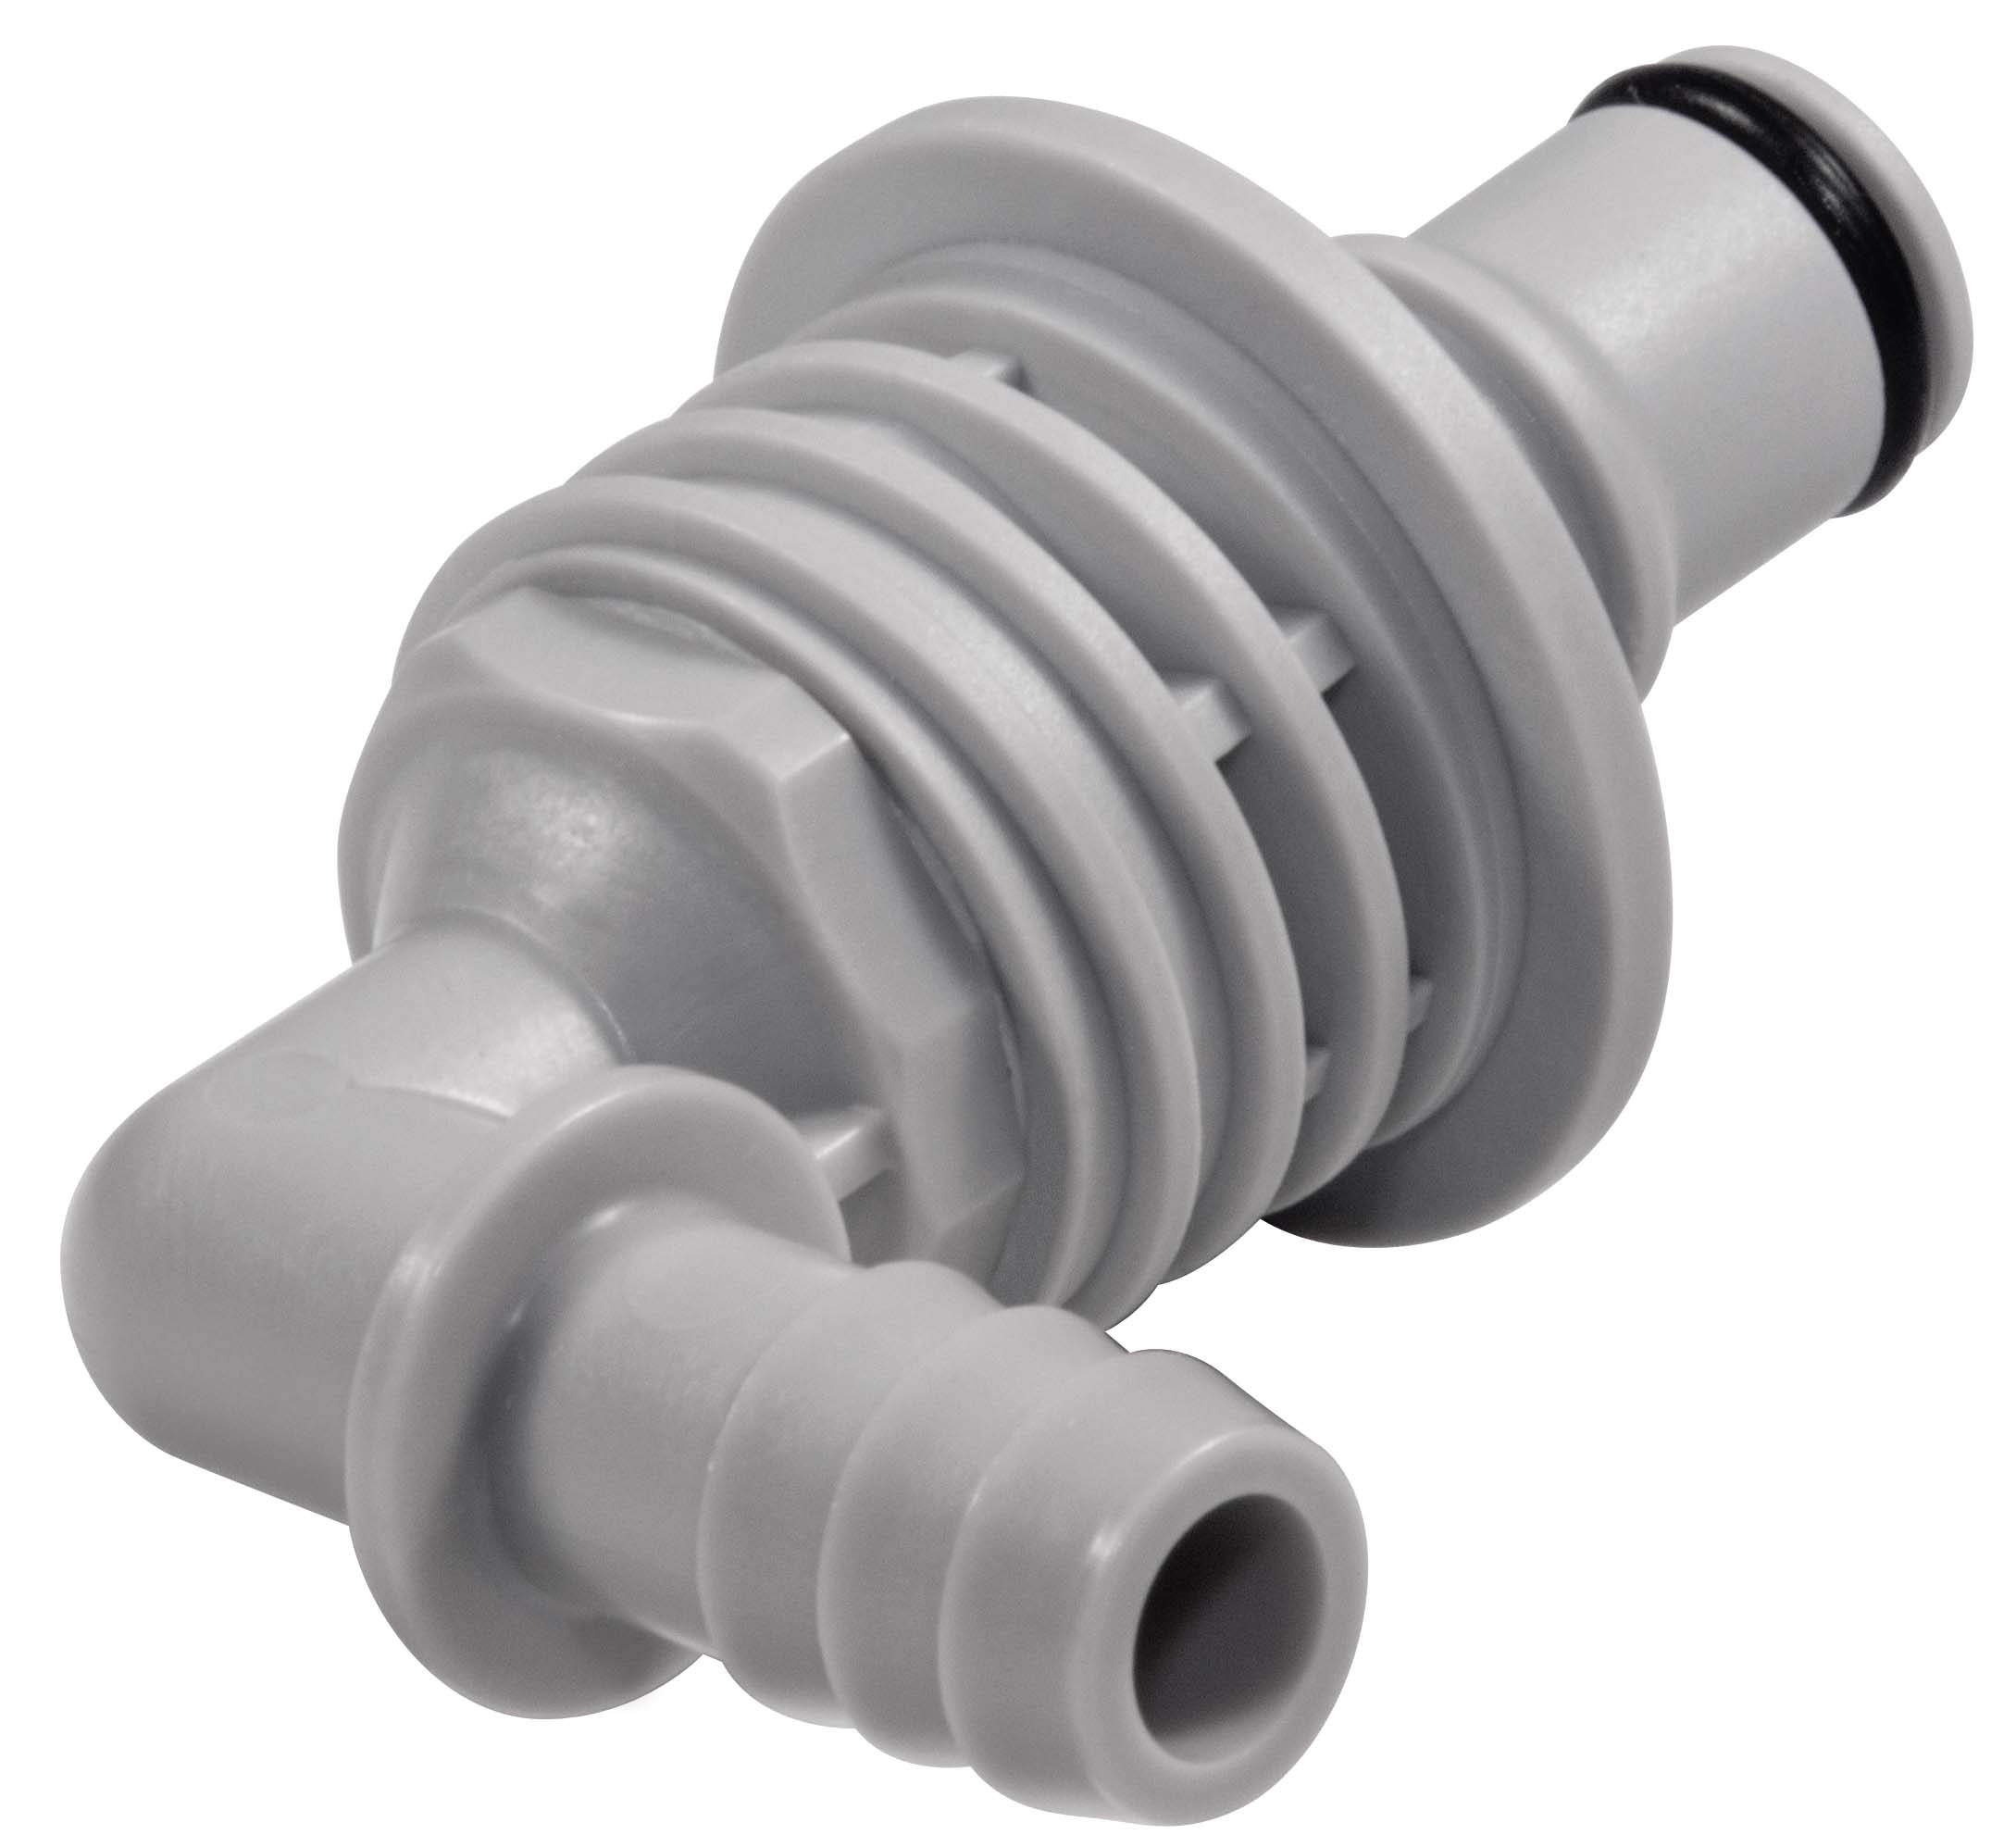 3/8 Hose Barb Valved Panel Mount Elbow Coupling Insert